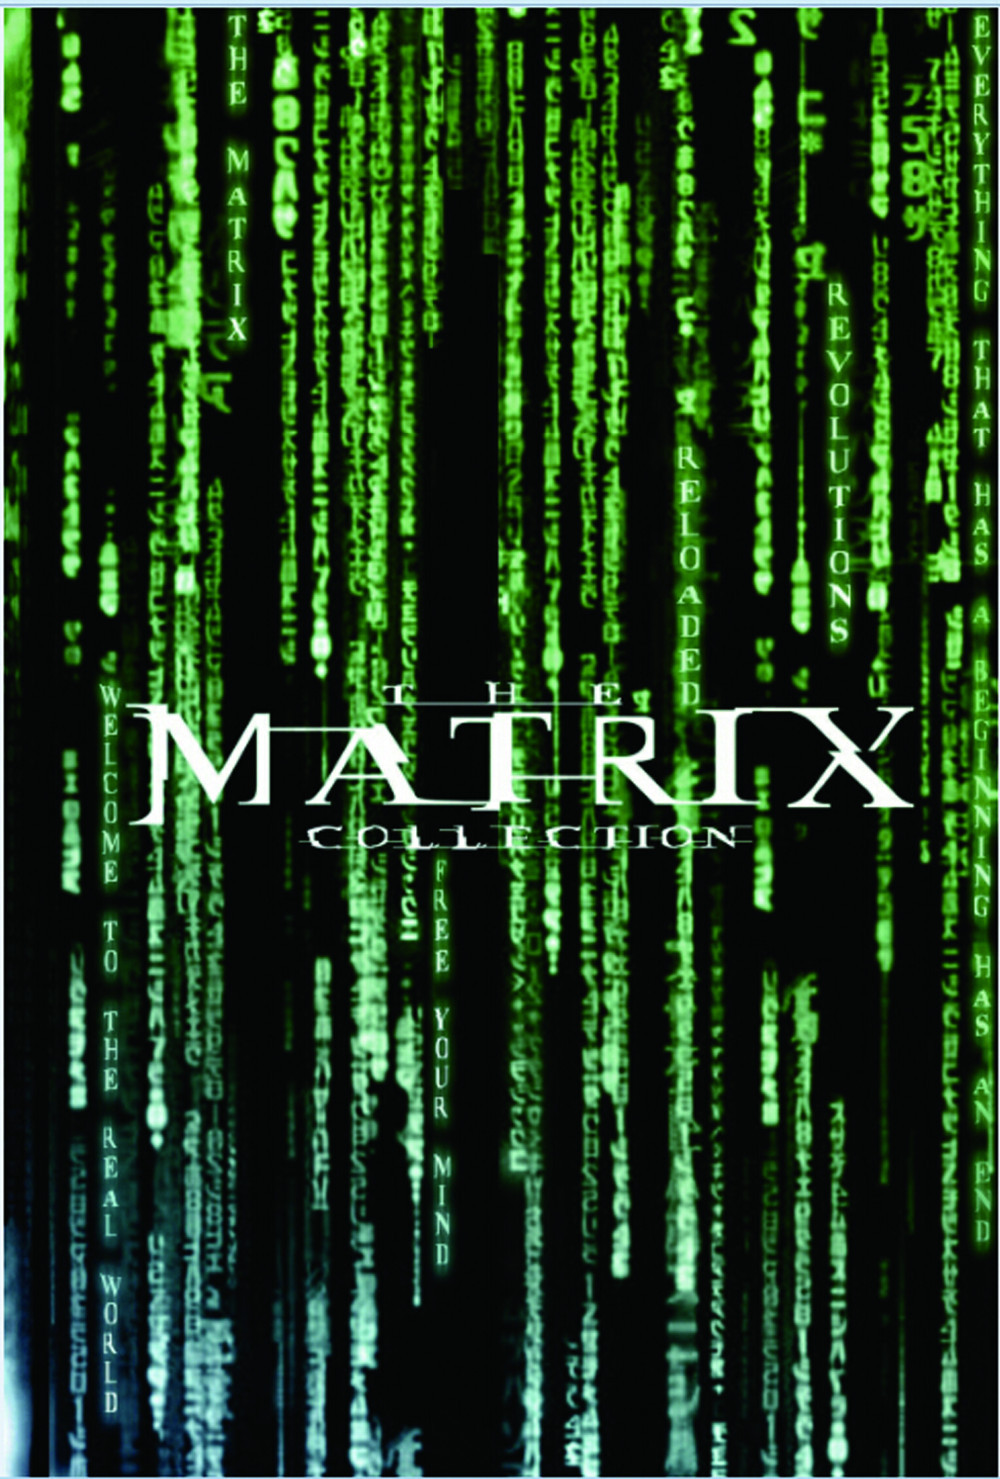 the matrix movie posters custom art print custom home